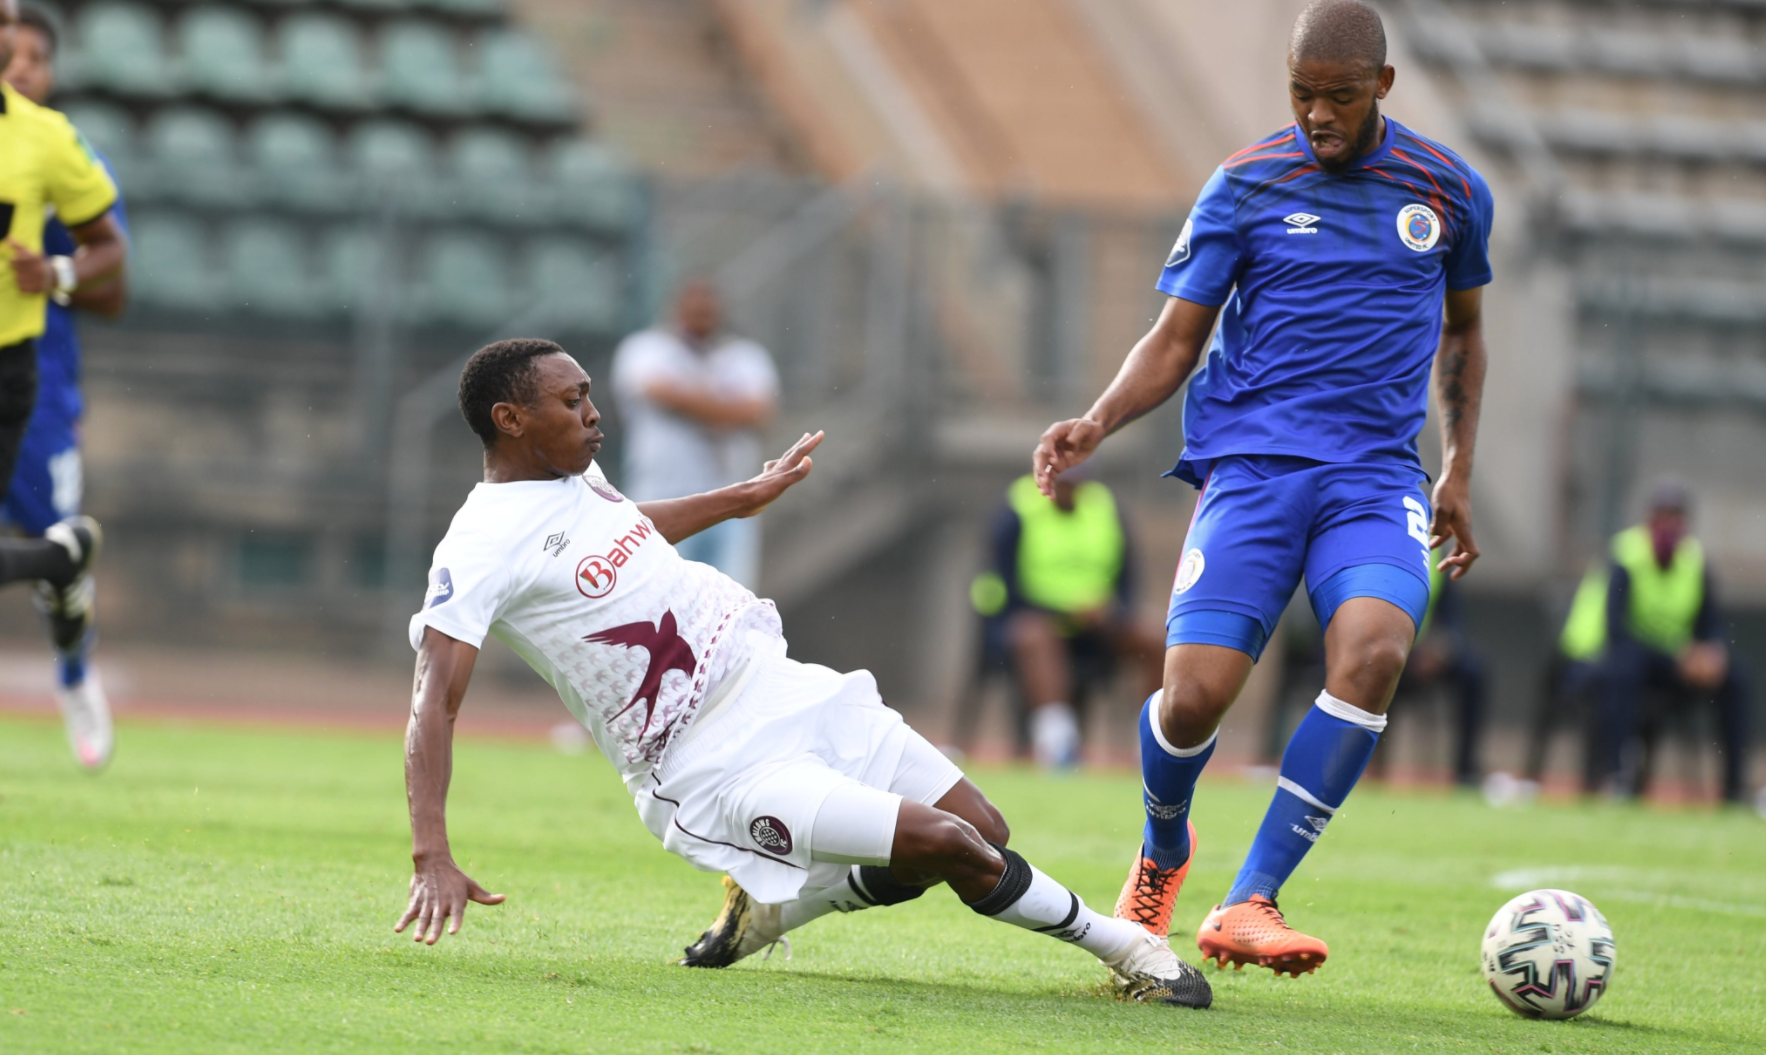 Swallows FC Hold Superspot United to extended their unbeaten start to the DStv Premiership season